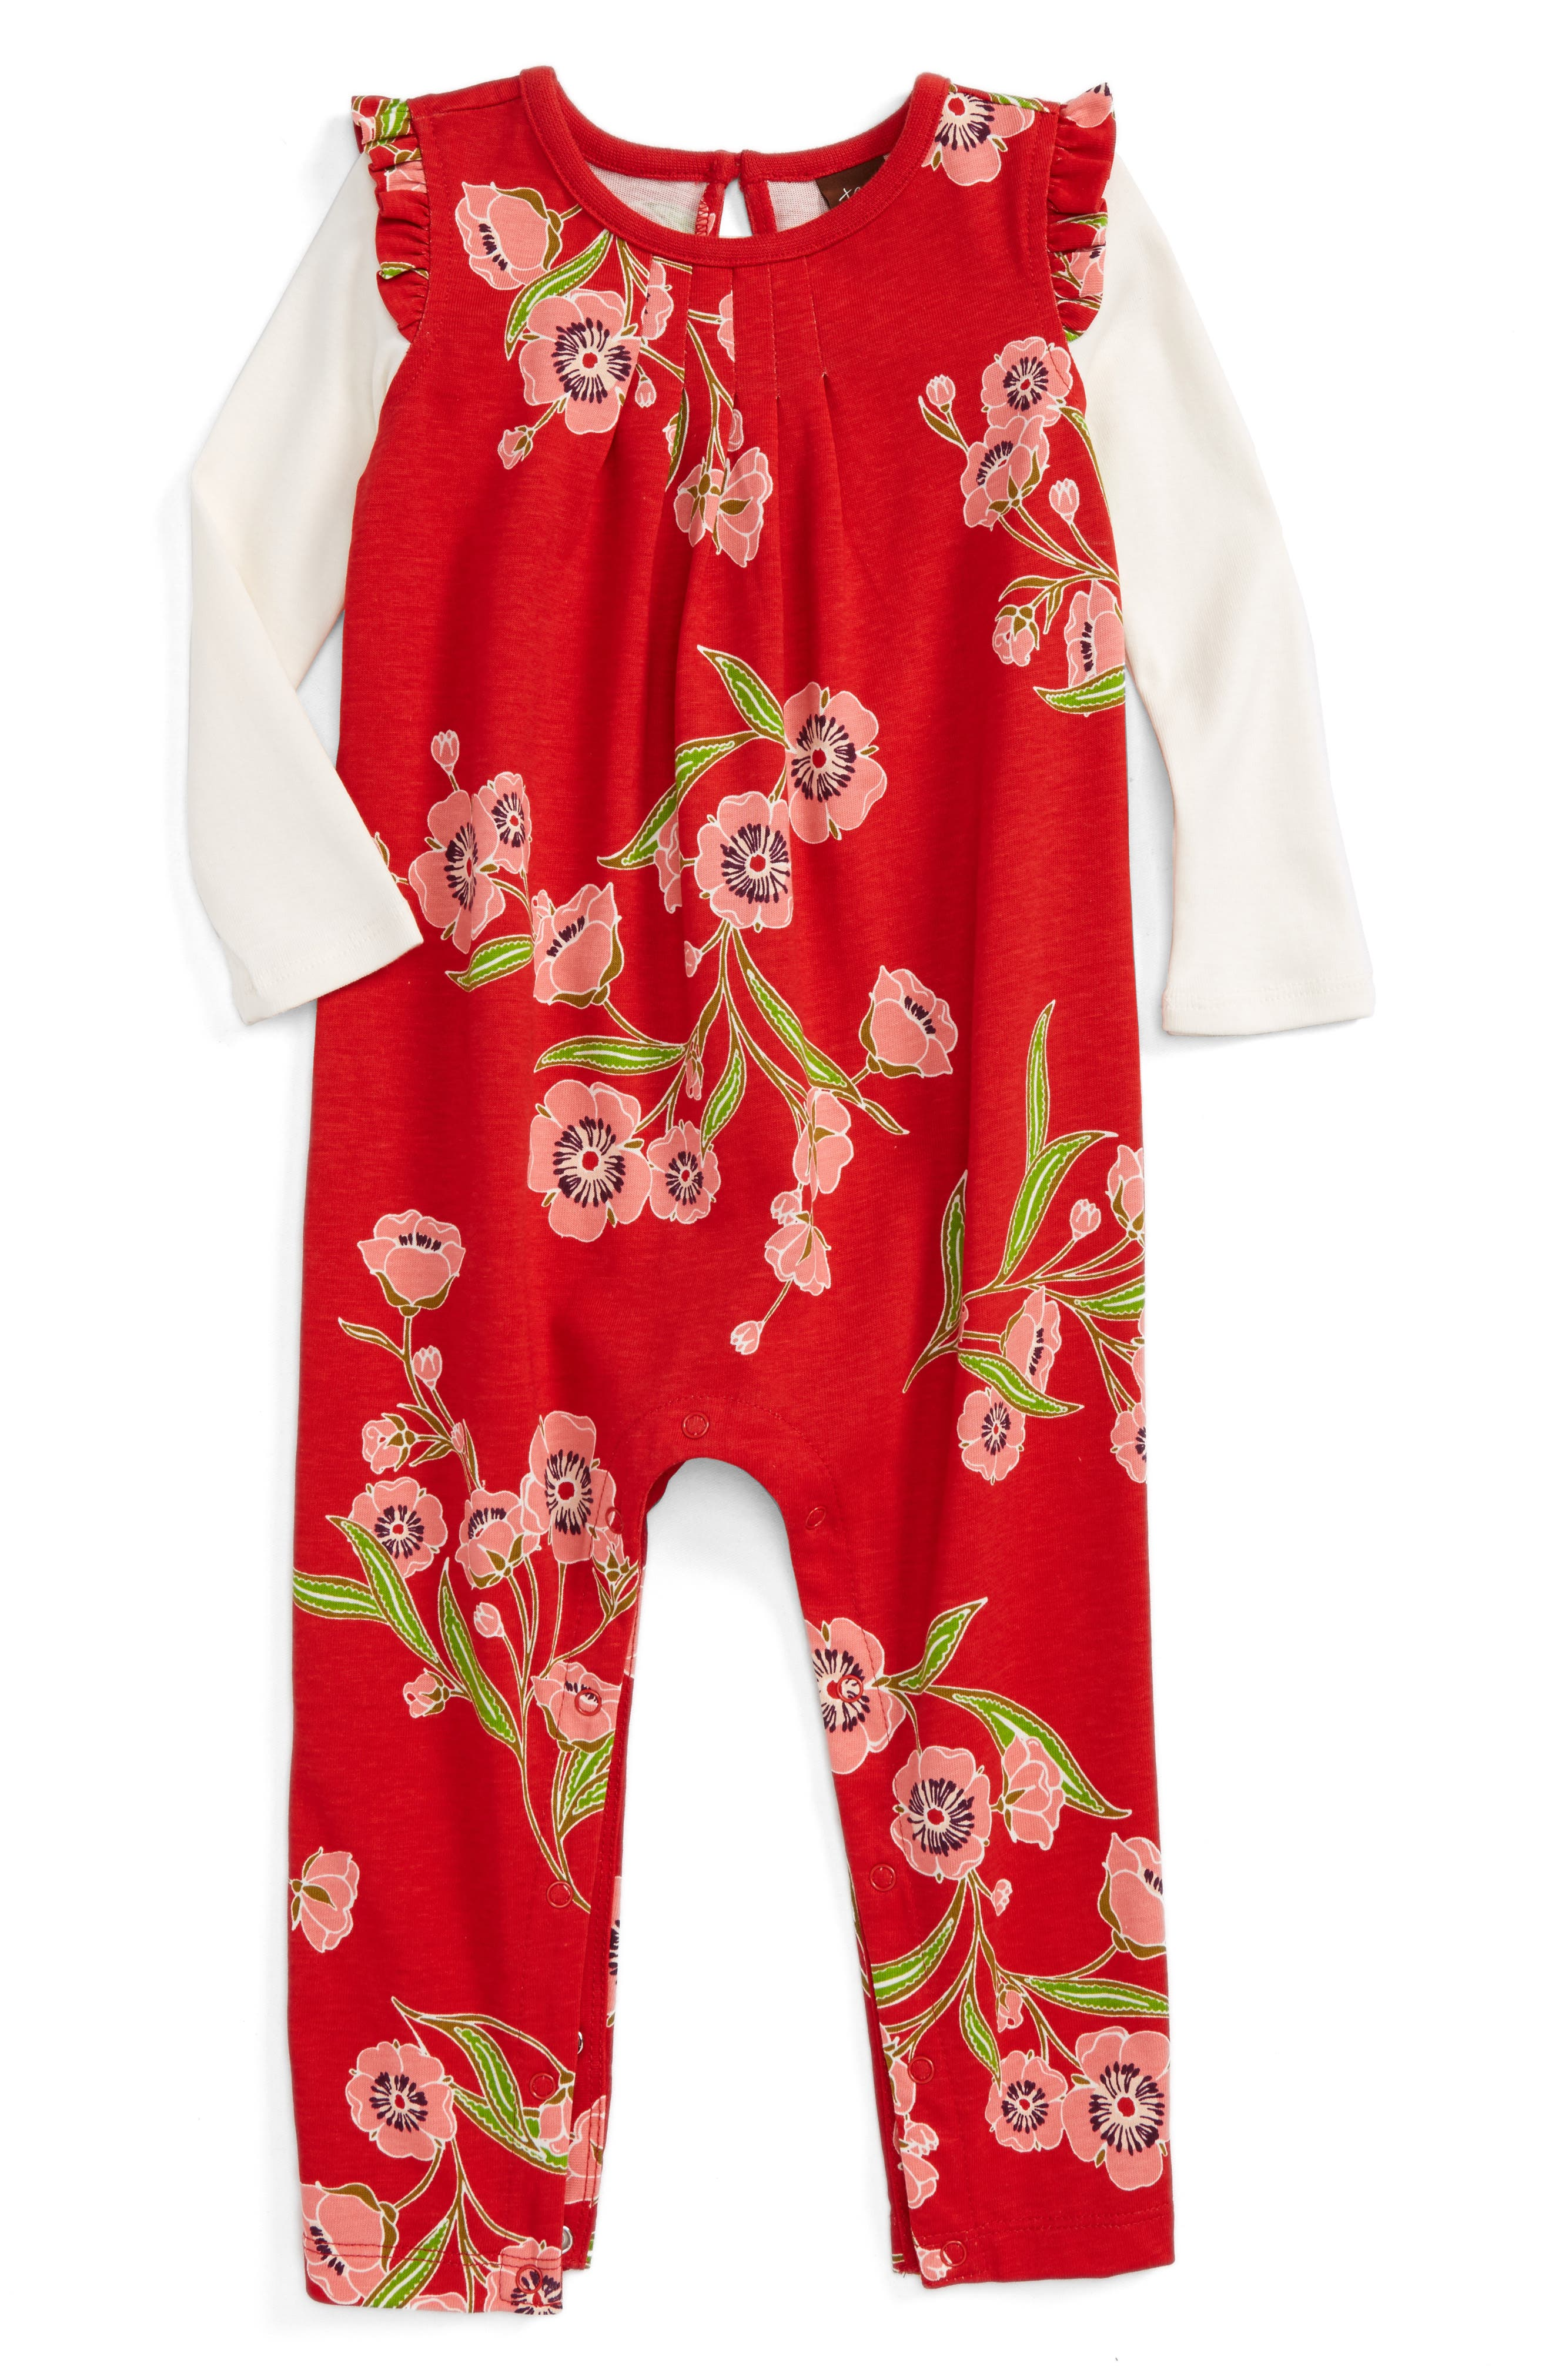 Alternate Image 1 Selected - Tea Collection Rowan Romper (Baby Girls)